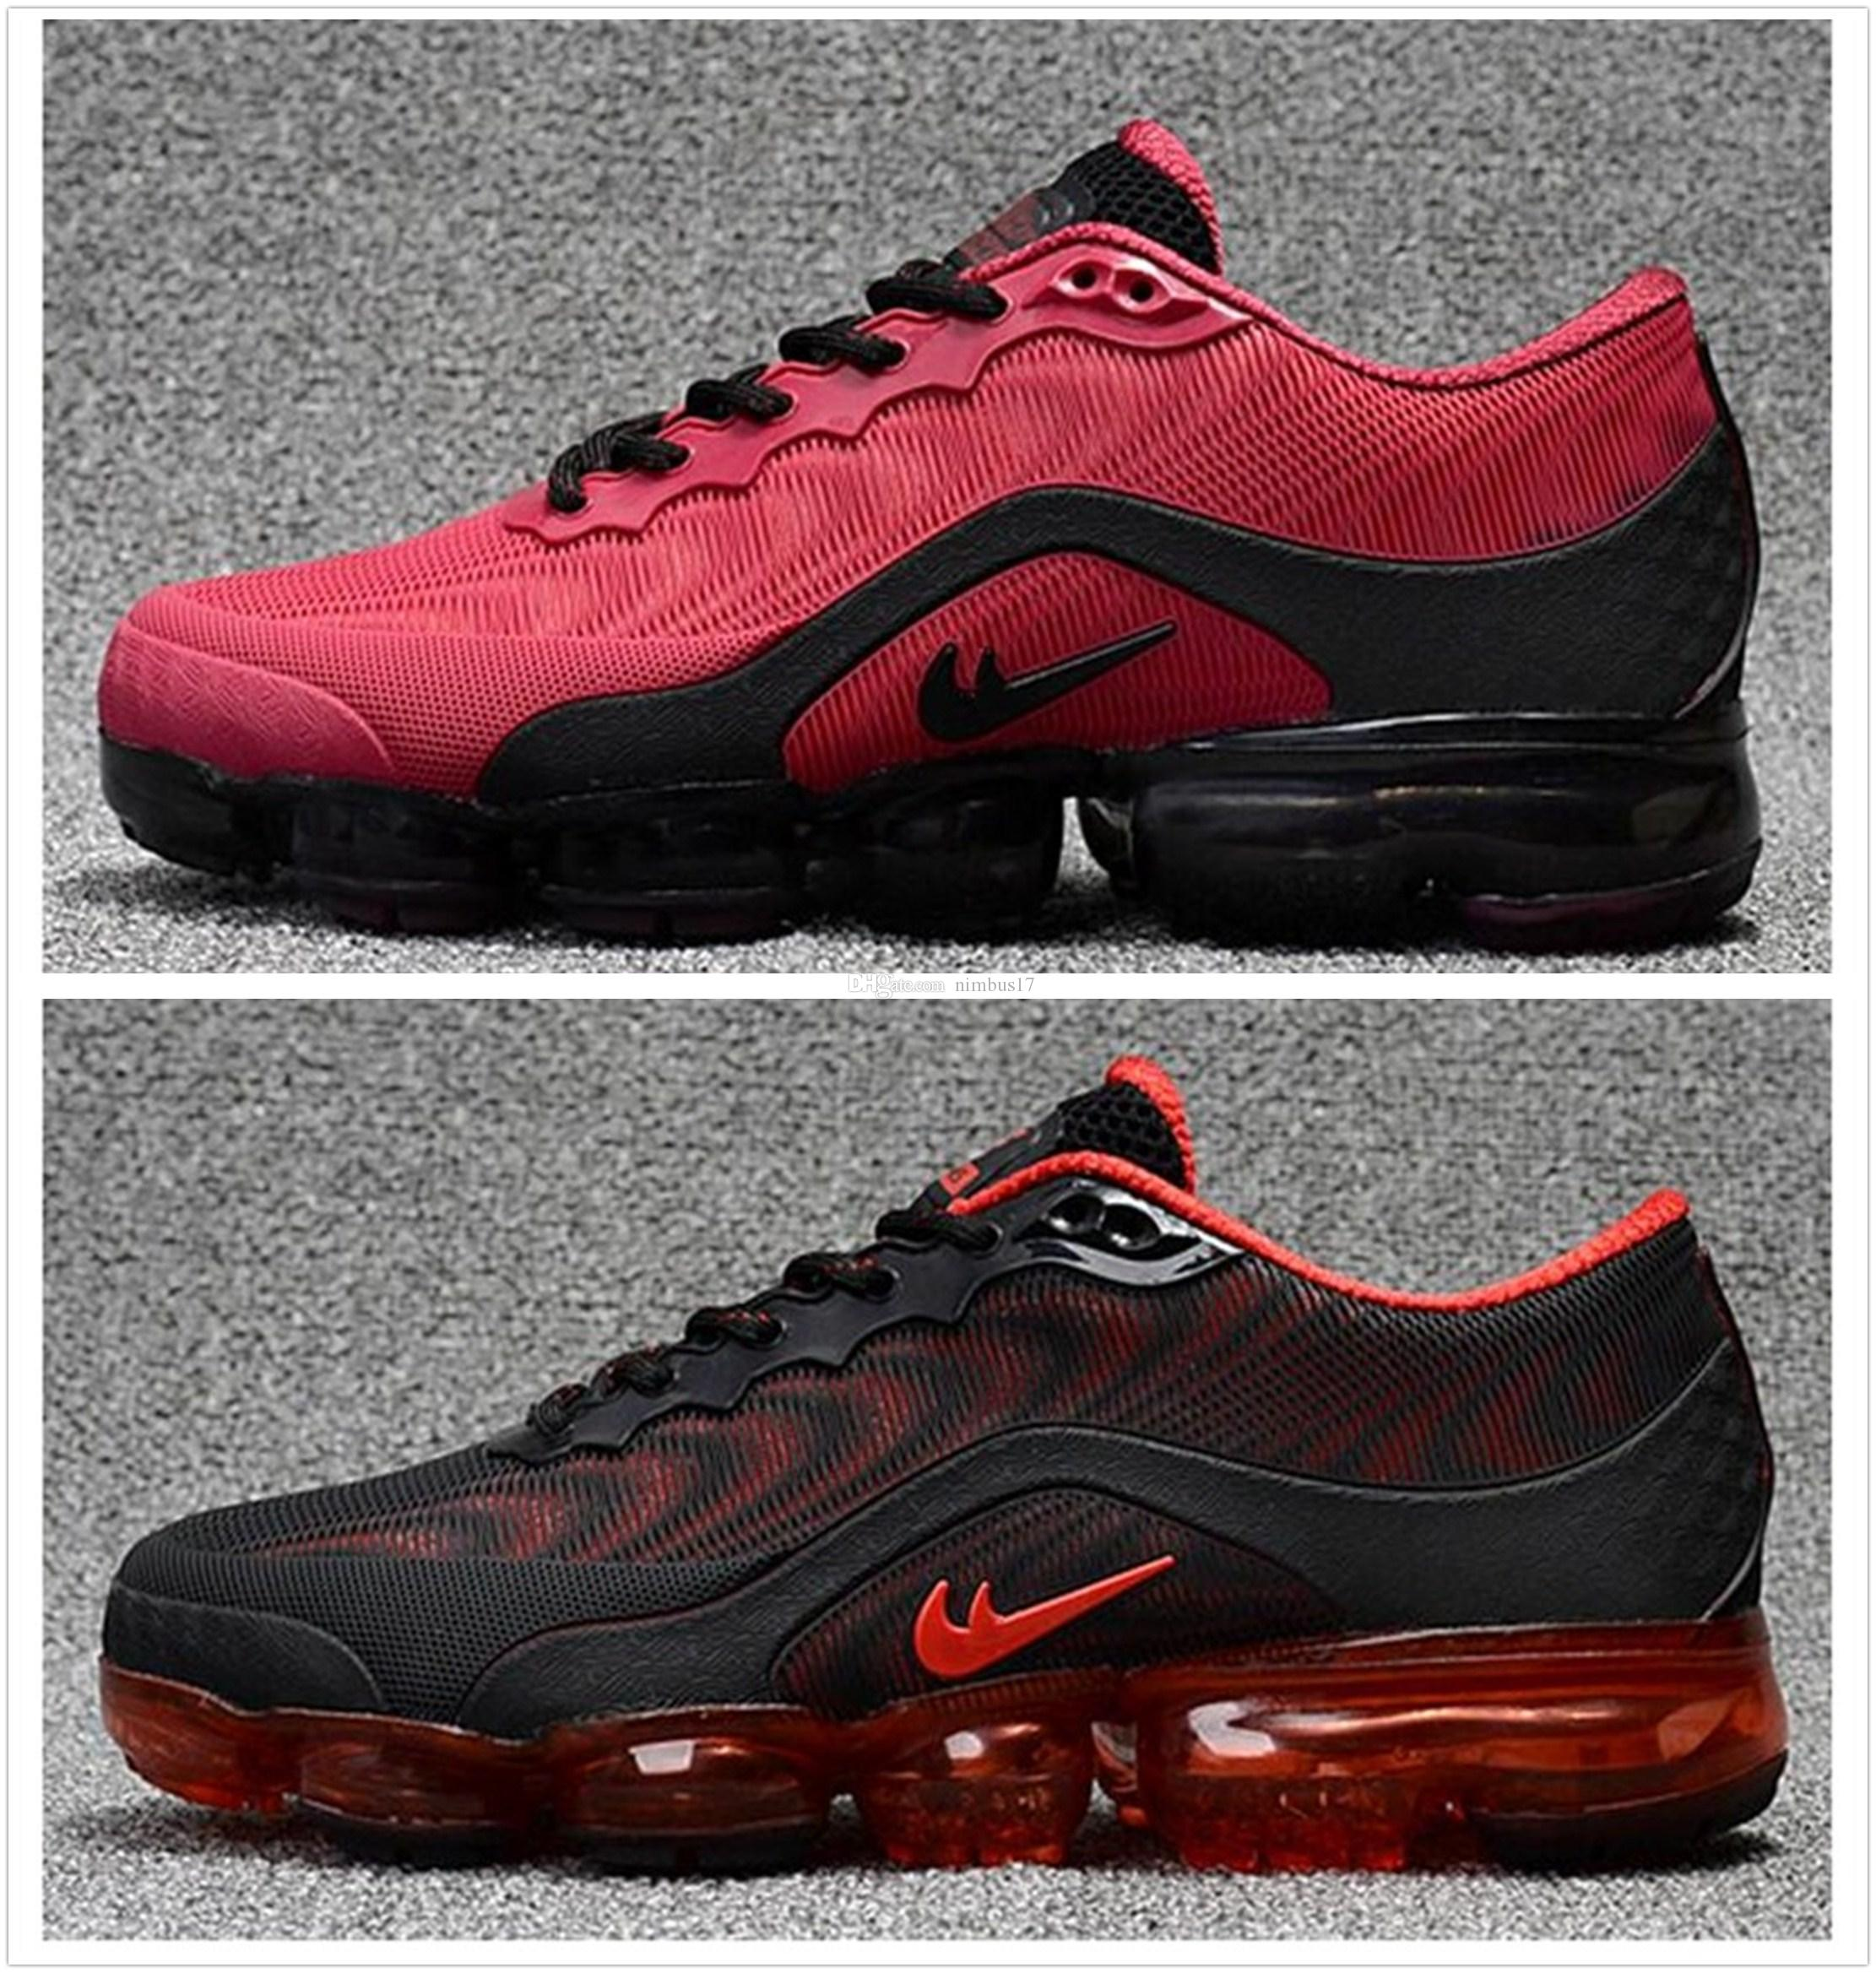 quality design e6921 e7759 2018 New Men Air Cushion Running Shoes New 2018.5 Air Vapormax Kpu Women  Casual Sneakers Outdoor Breathable Vapor Athletic Shoes 40 47 Cheap Shoes  For ...